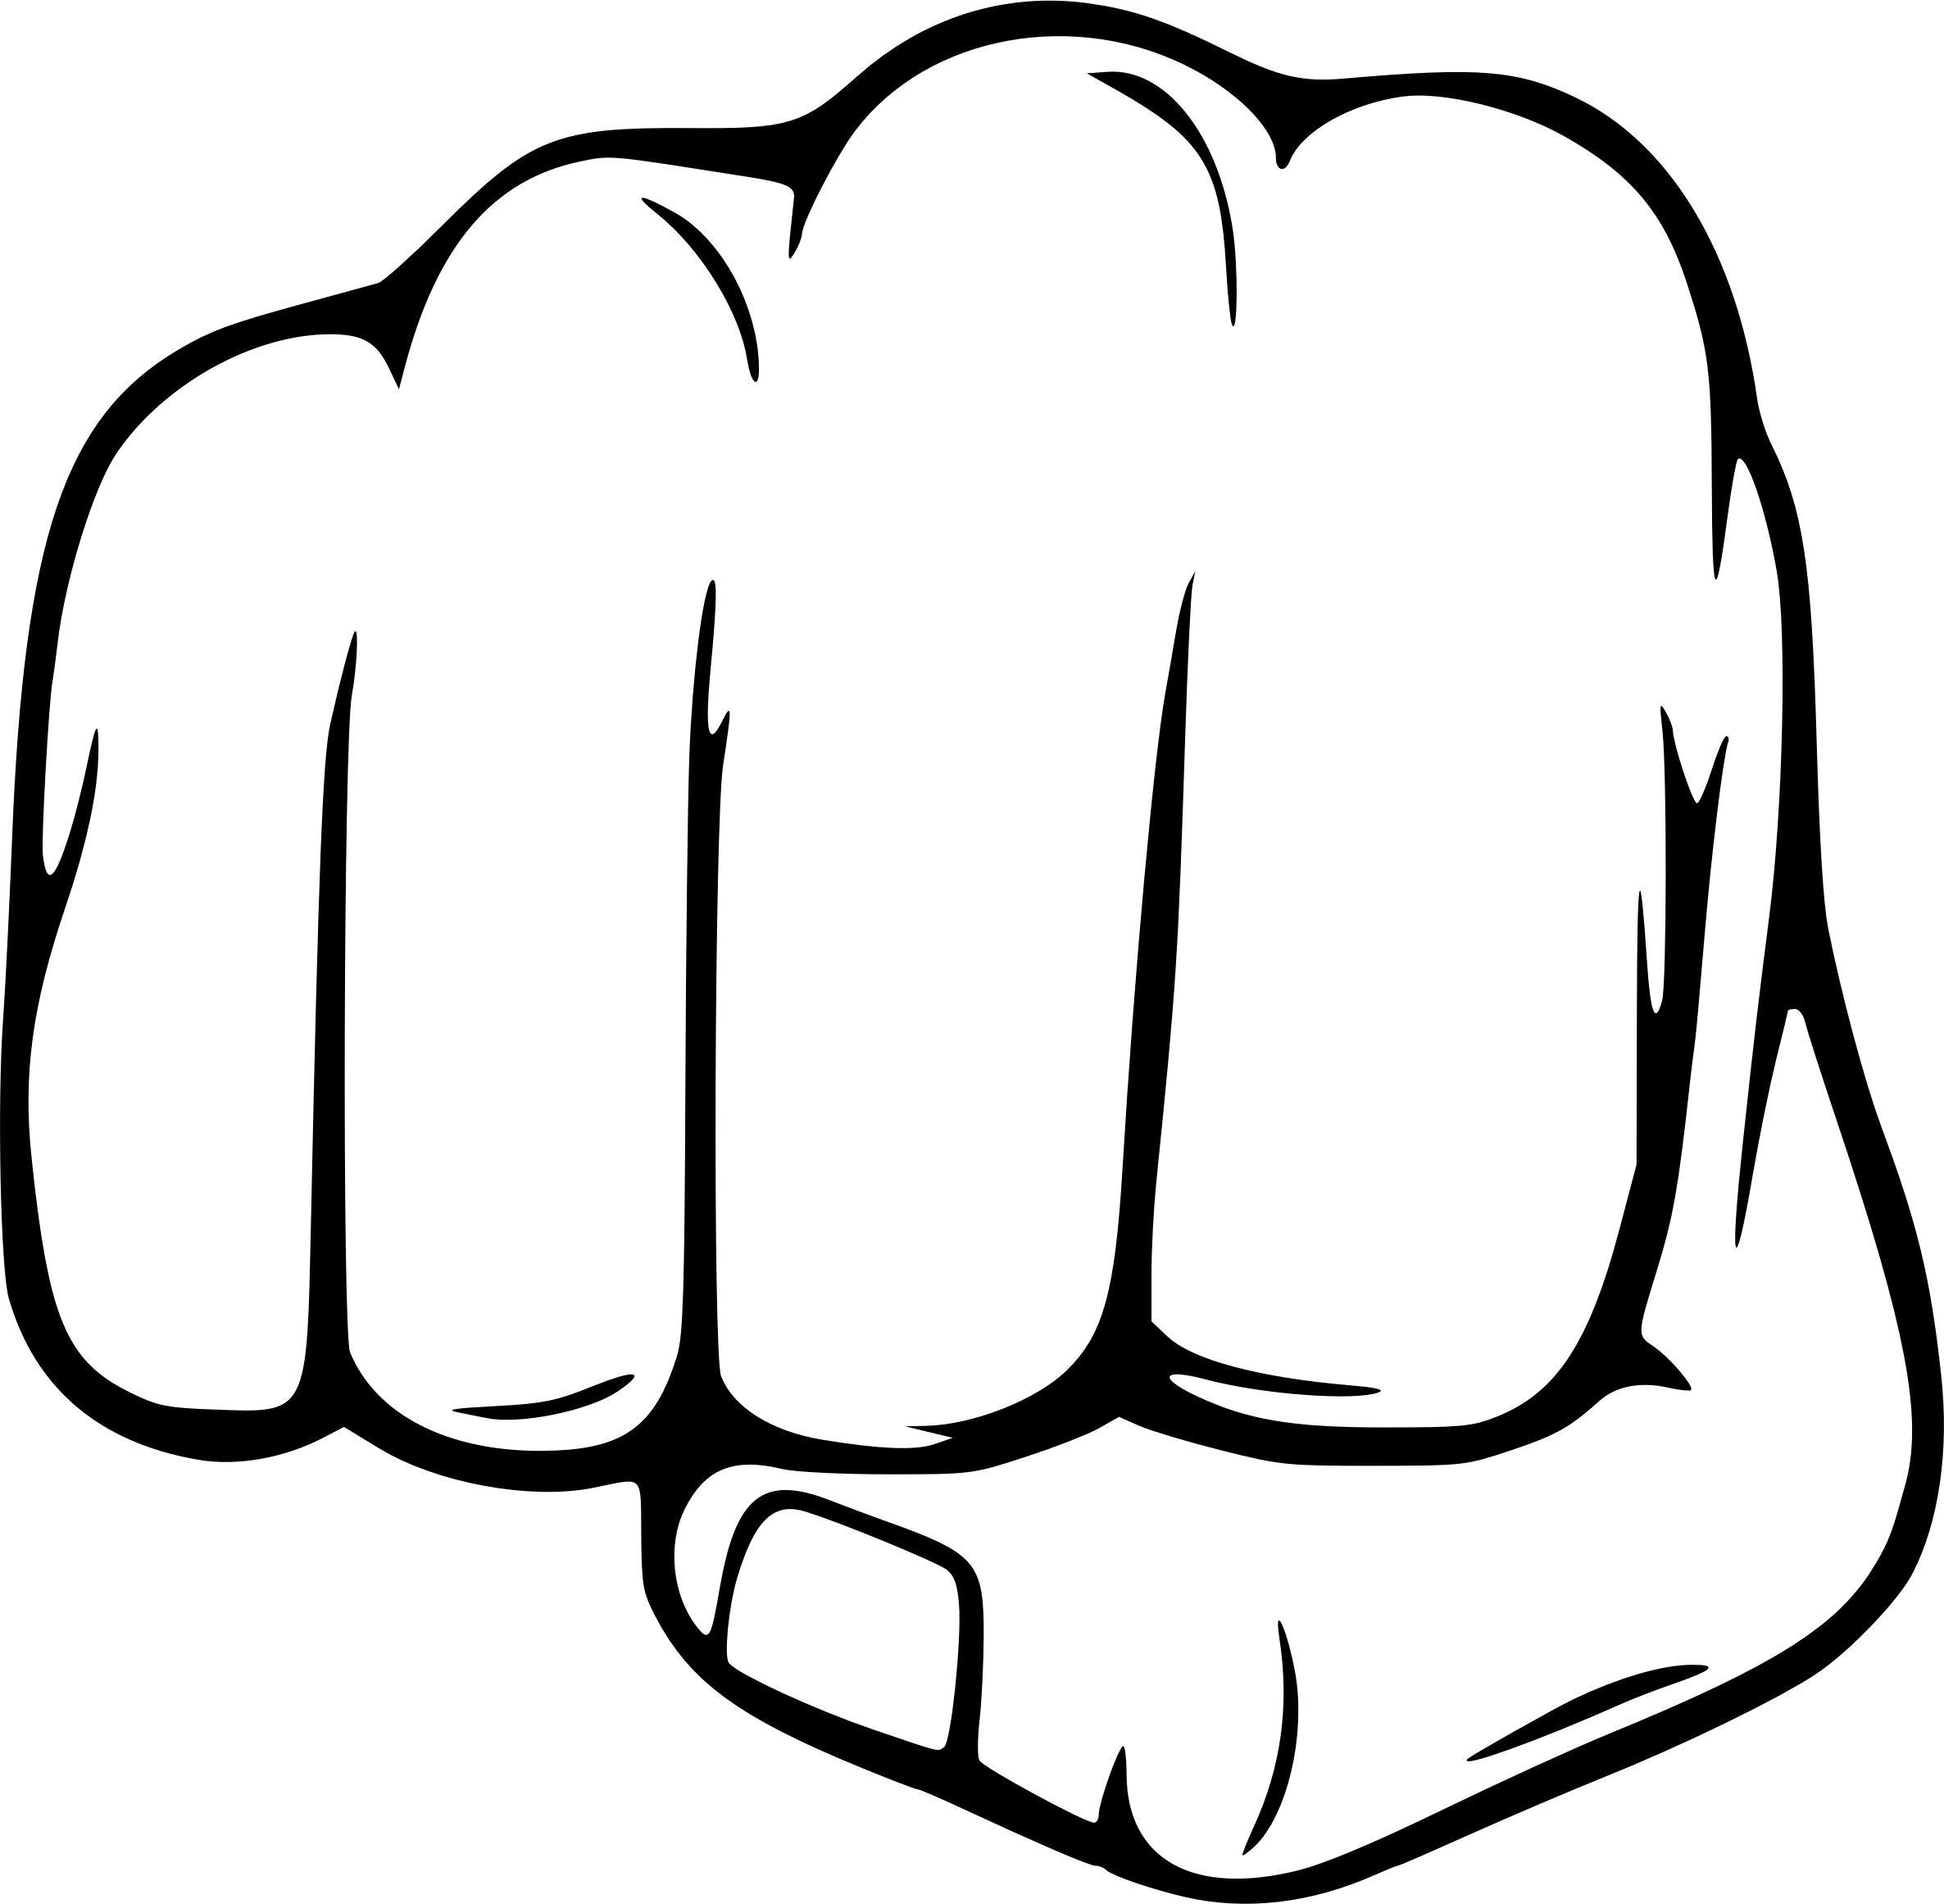 Fist clipart sideways.  collection of transparent